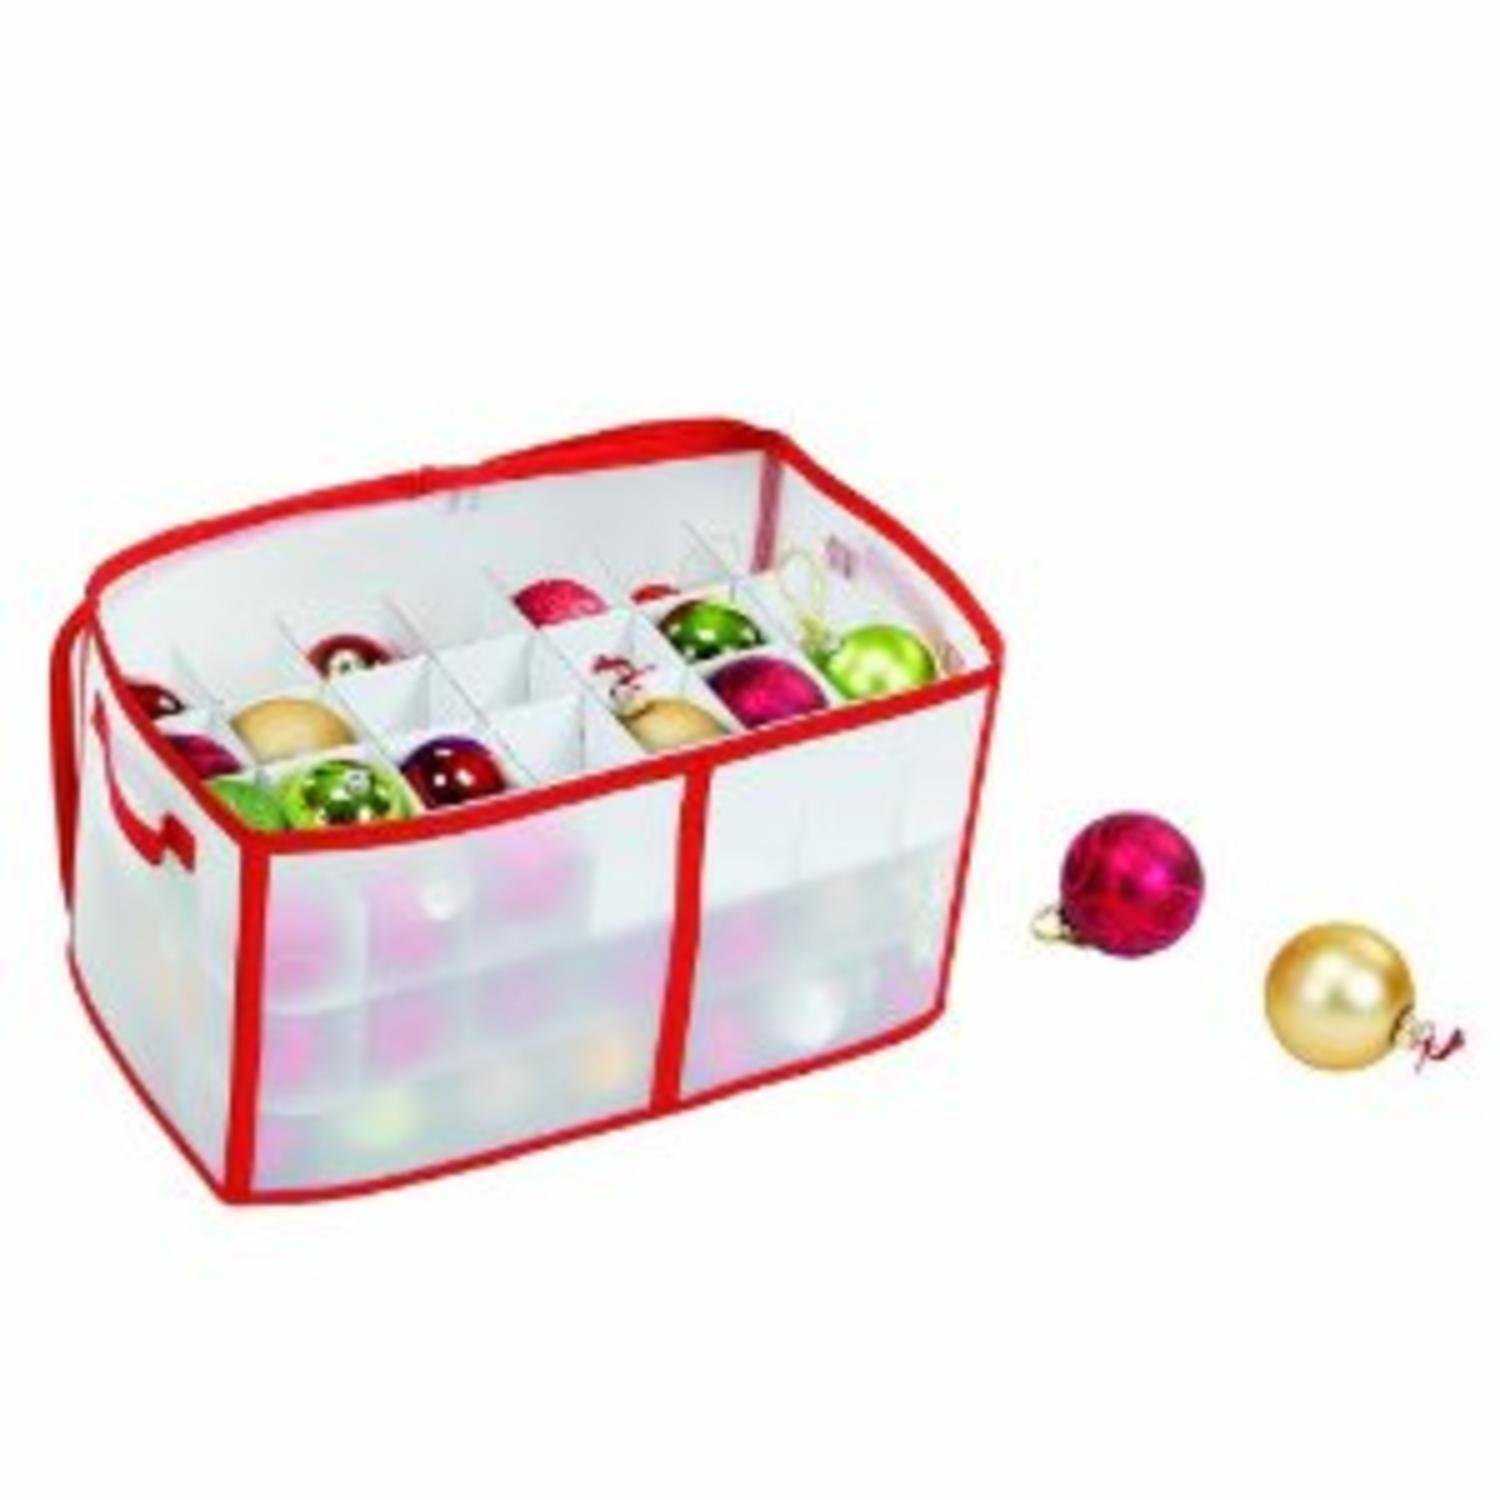 Northlight Zip-Up Christmas Decoration Storage Bag - Holds up to 112 Ornaments GDNC17032